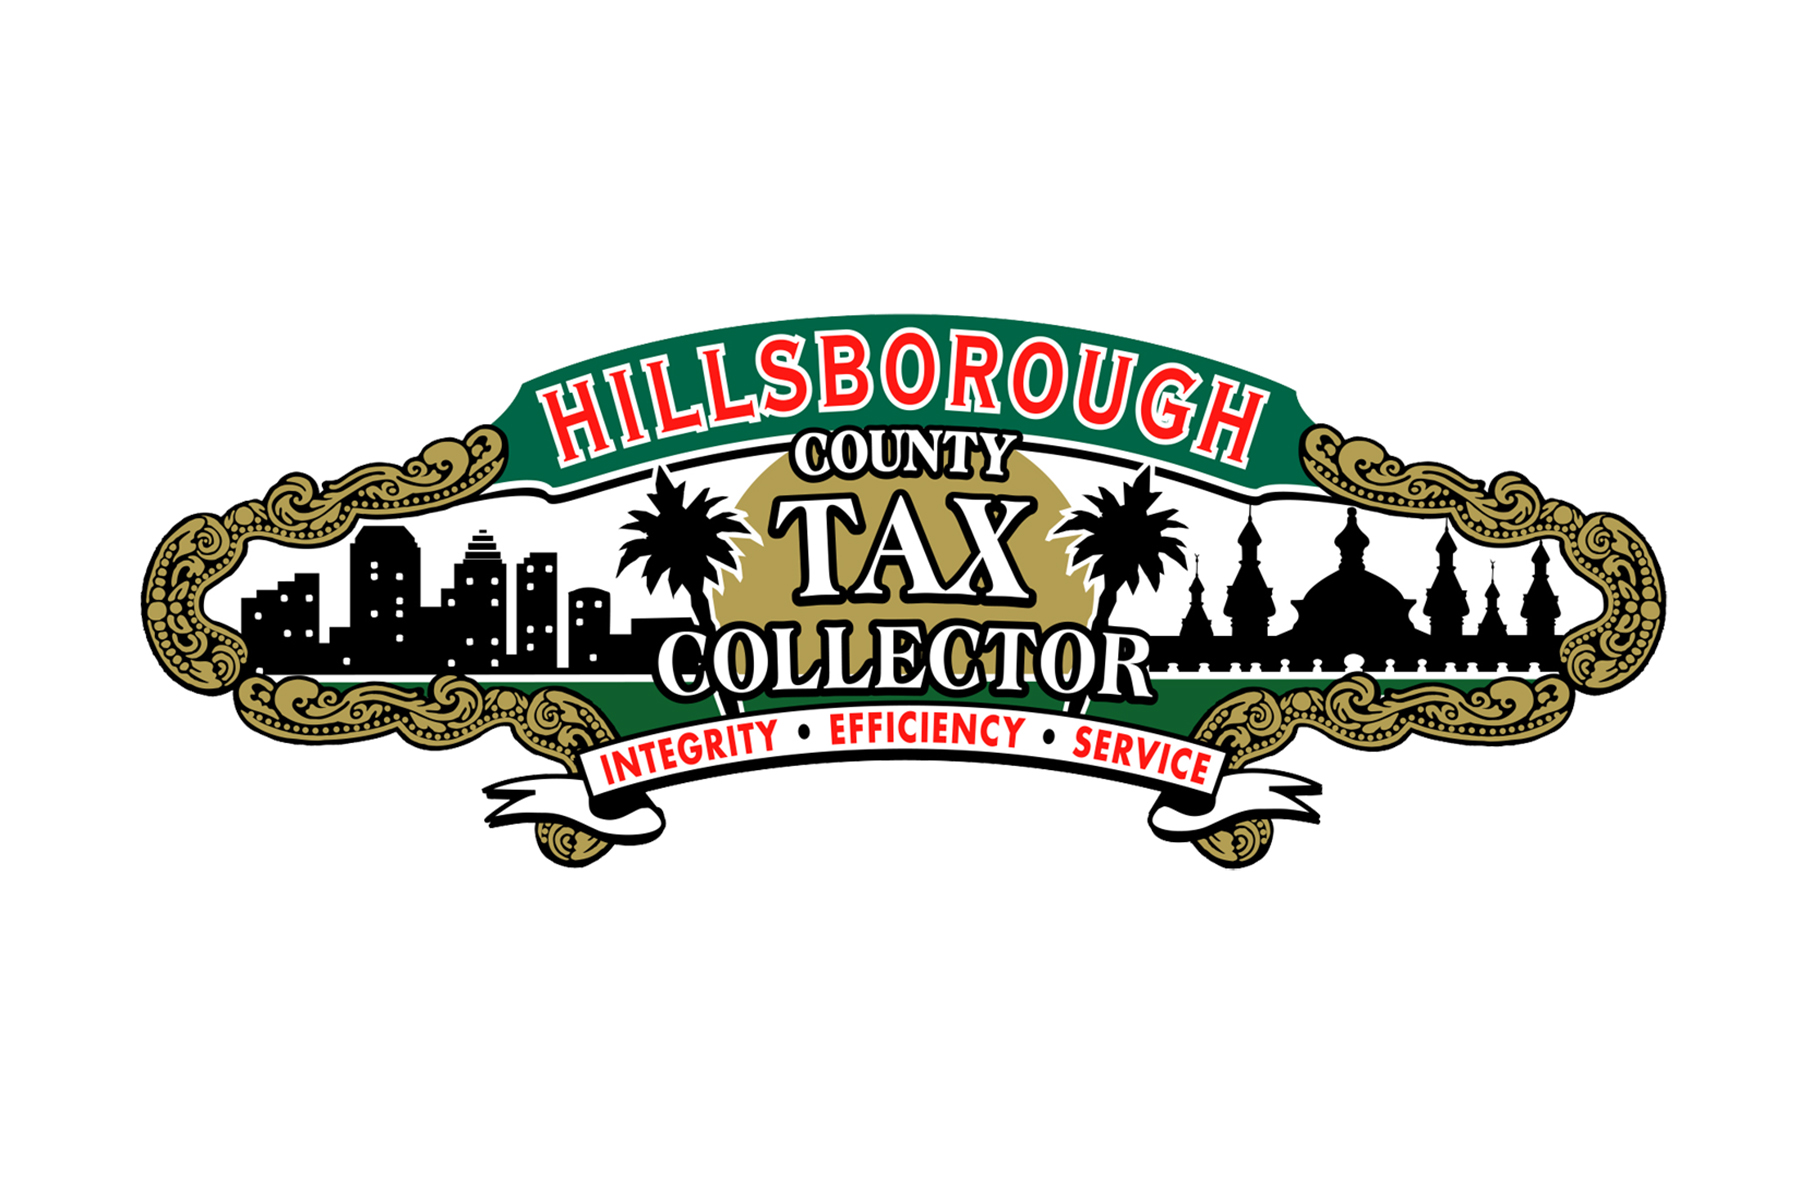 Tax Collectot Hillsbourough.jpg